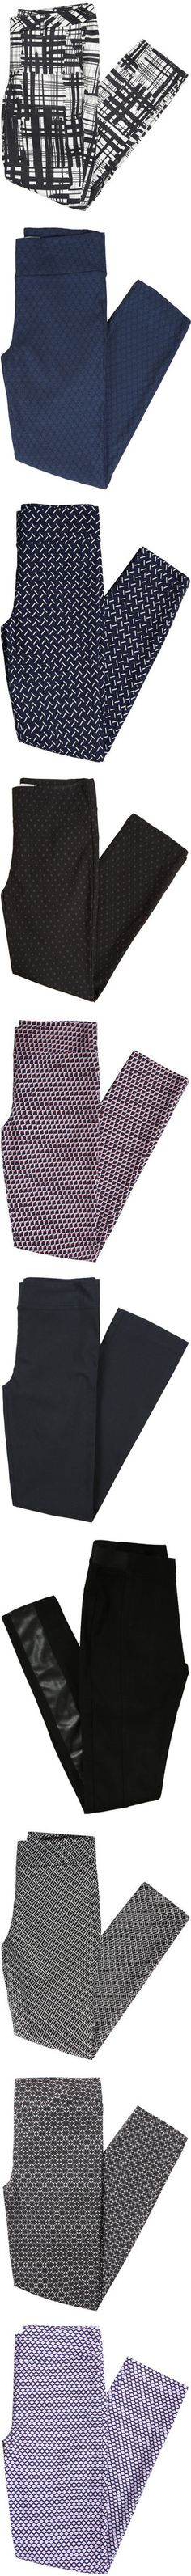 My black Emer pants are one of my favorite things to wear to work. I would love another pair or two in a solid or pattern.